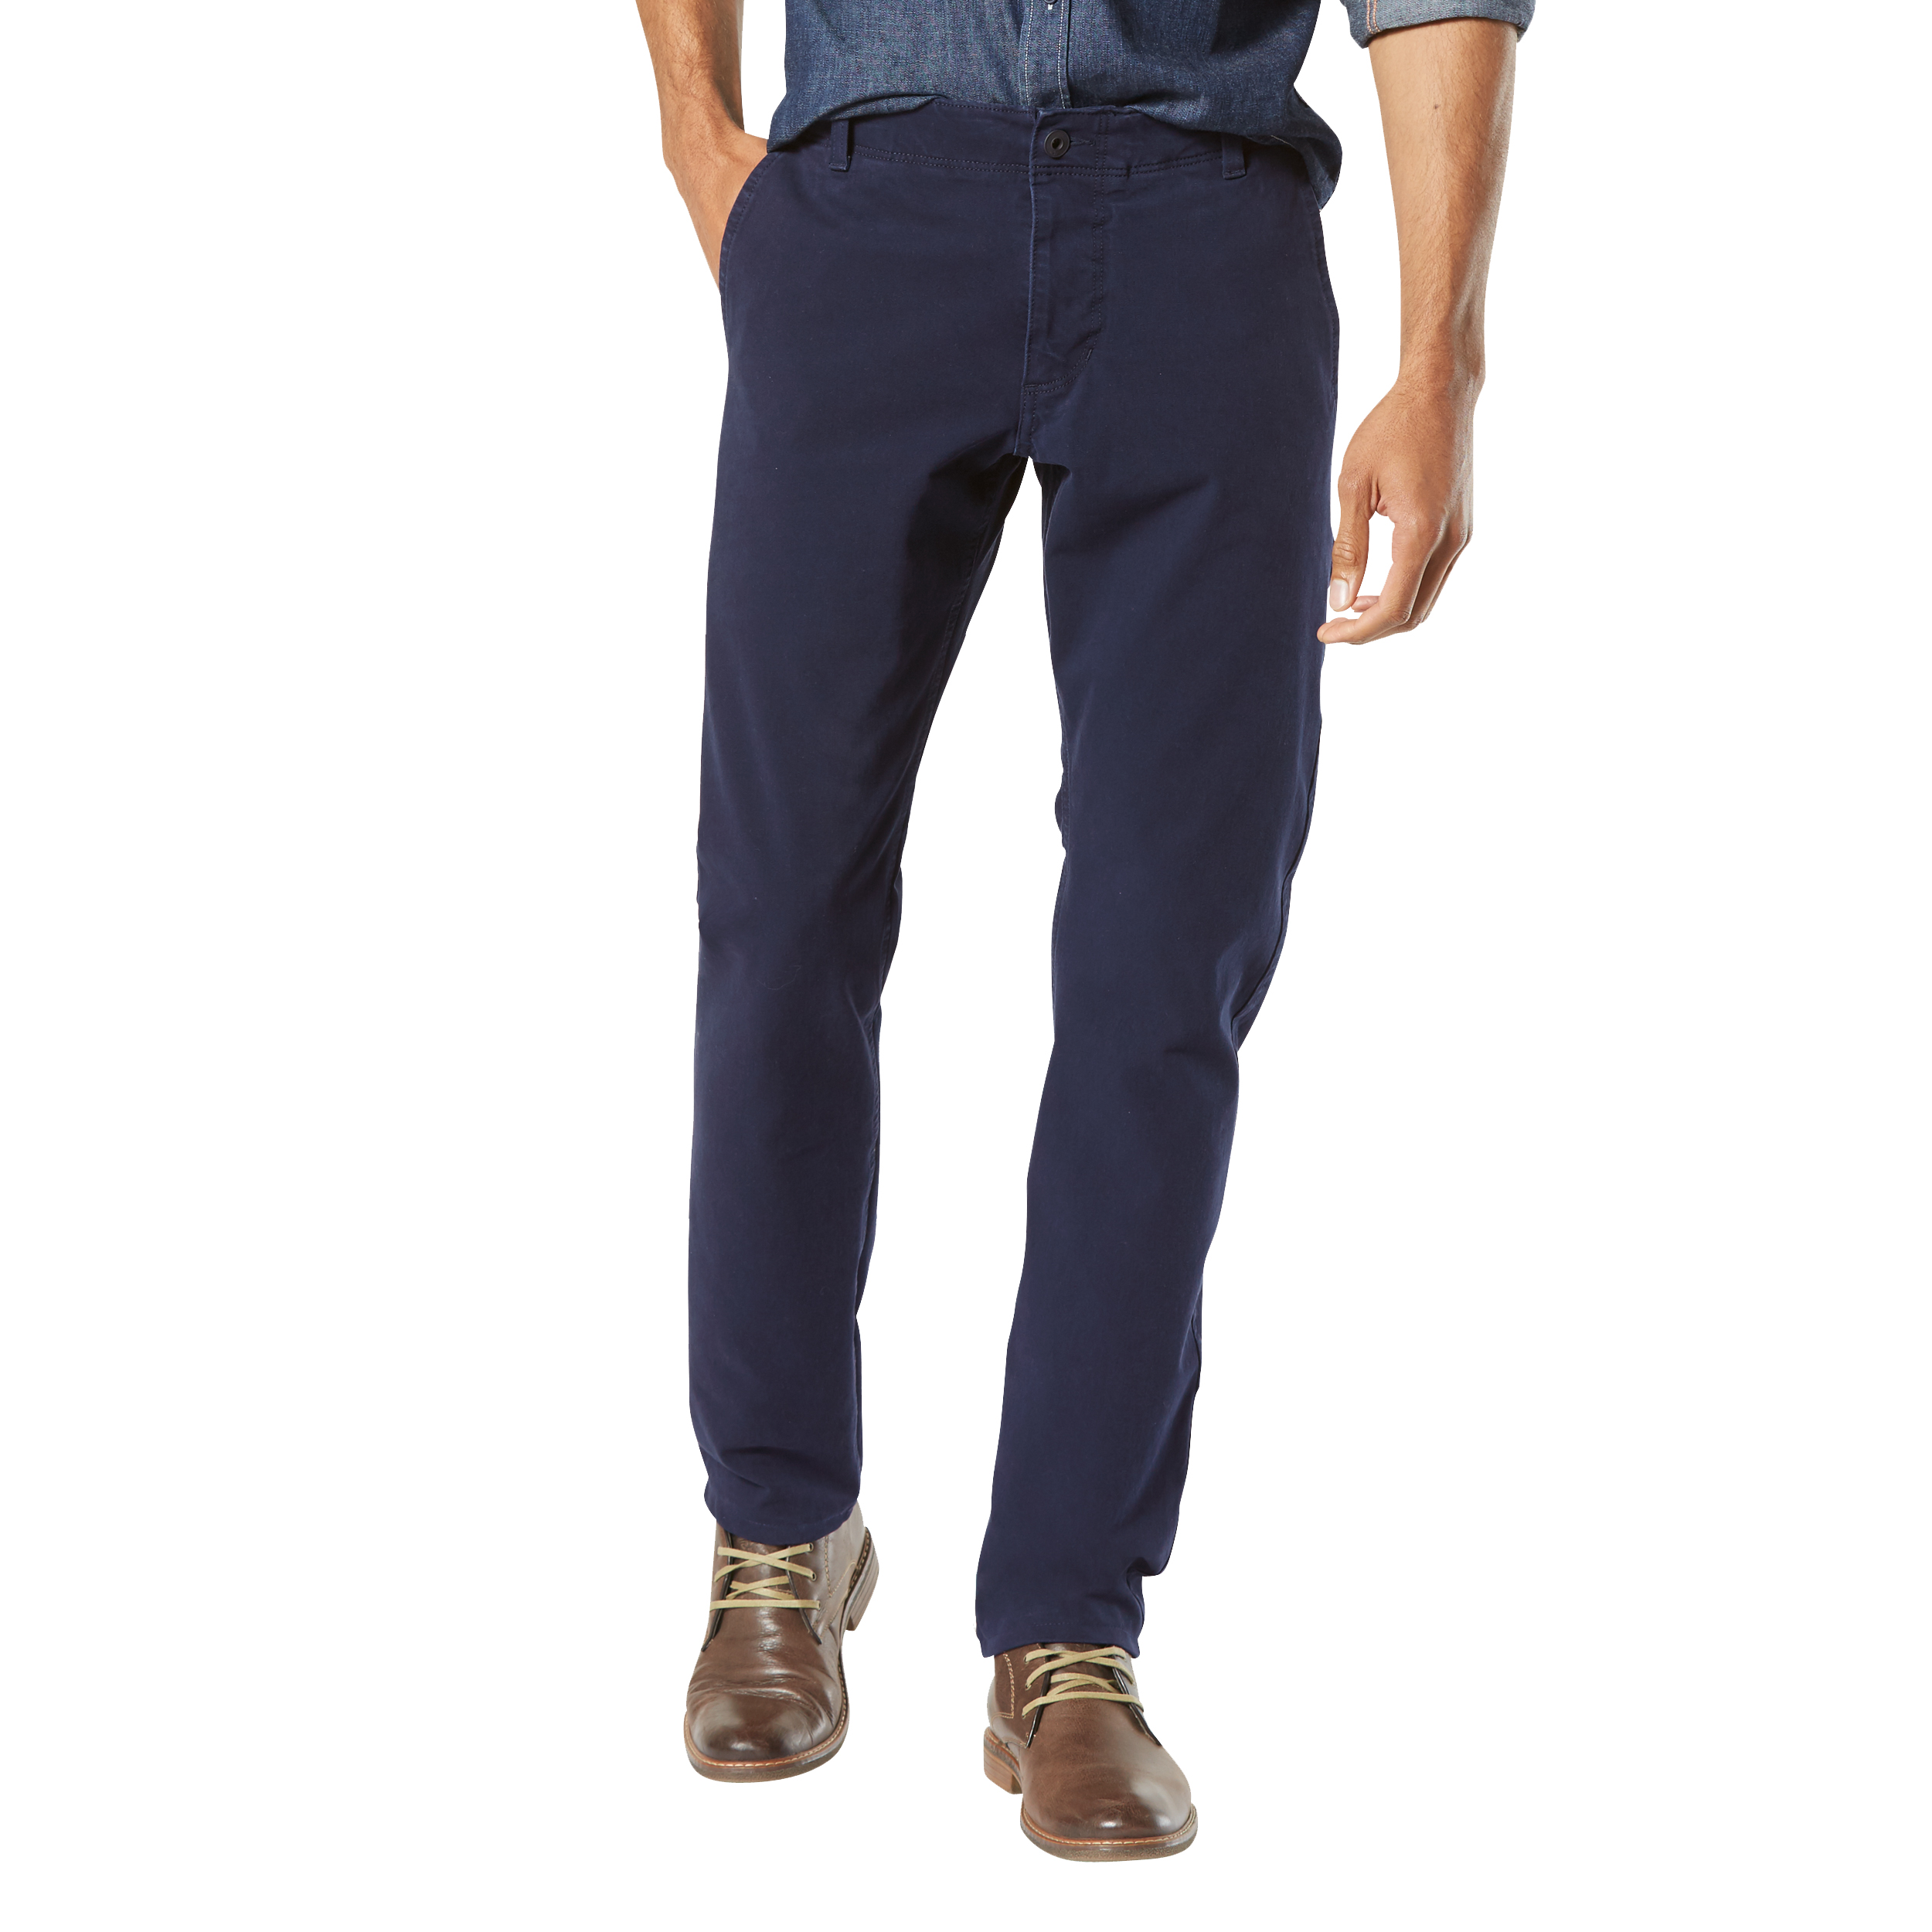 Pantalon  smart 360 flex alpha, slim tapered pembroke bleu marine